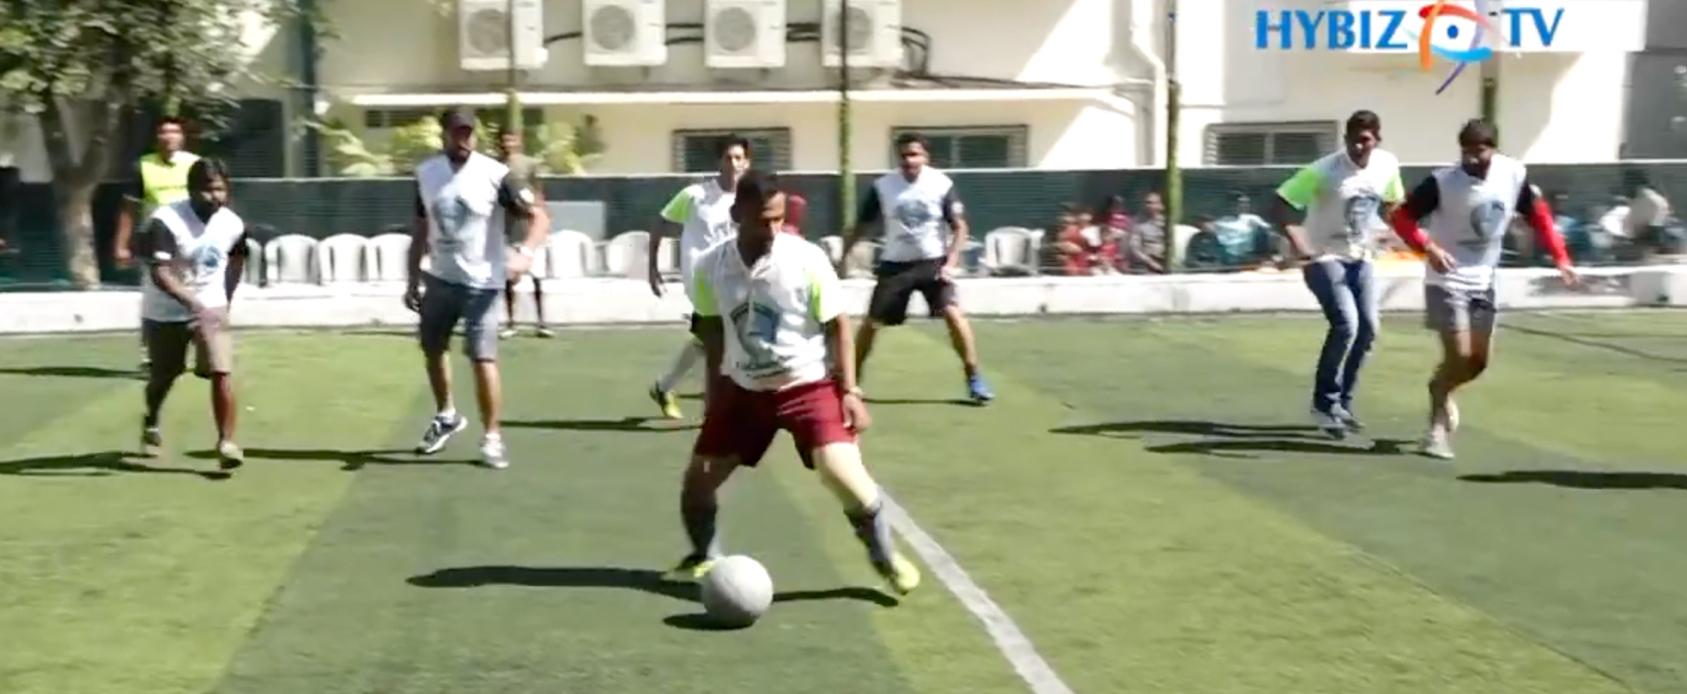 From Knee Surgery to Winning a Football Match in 6 Months